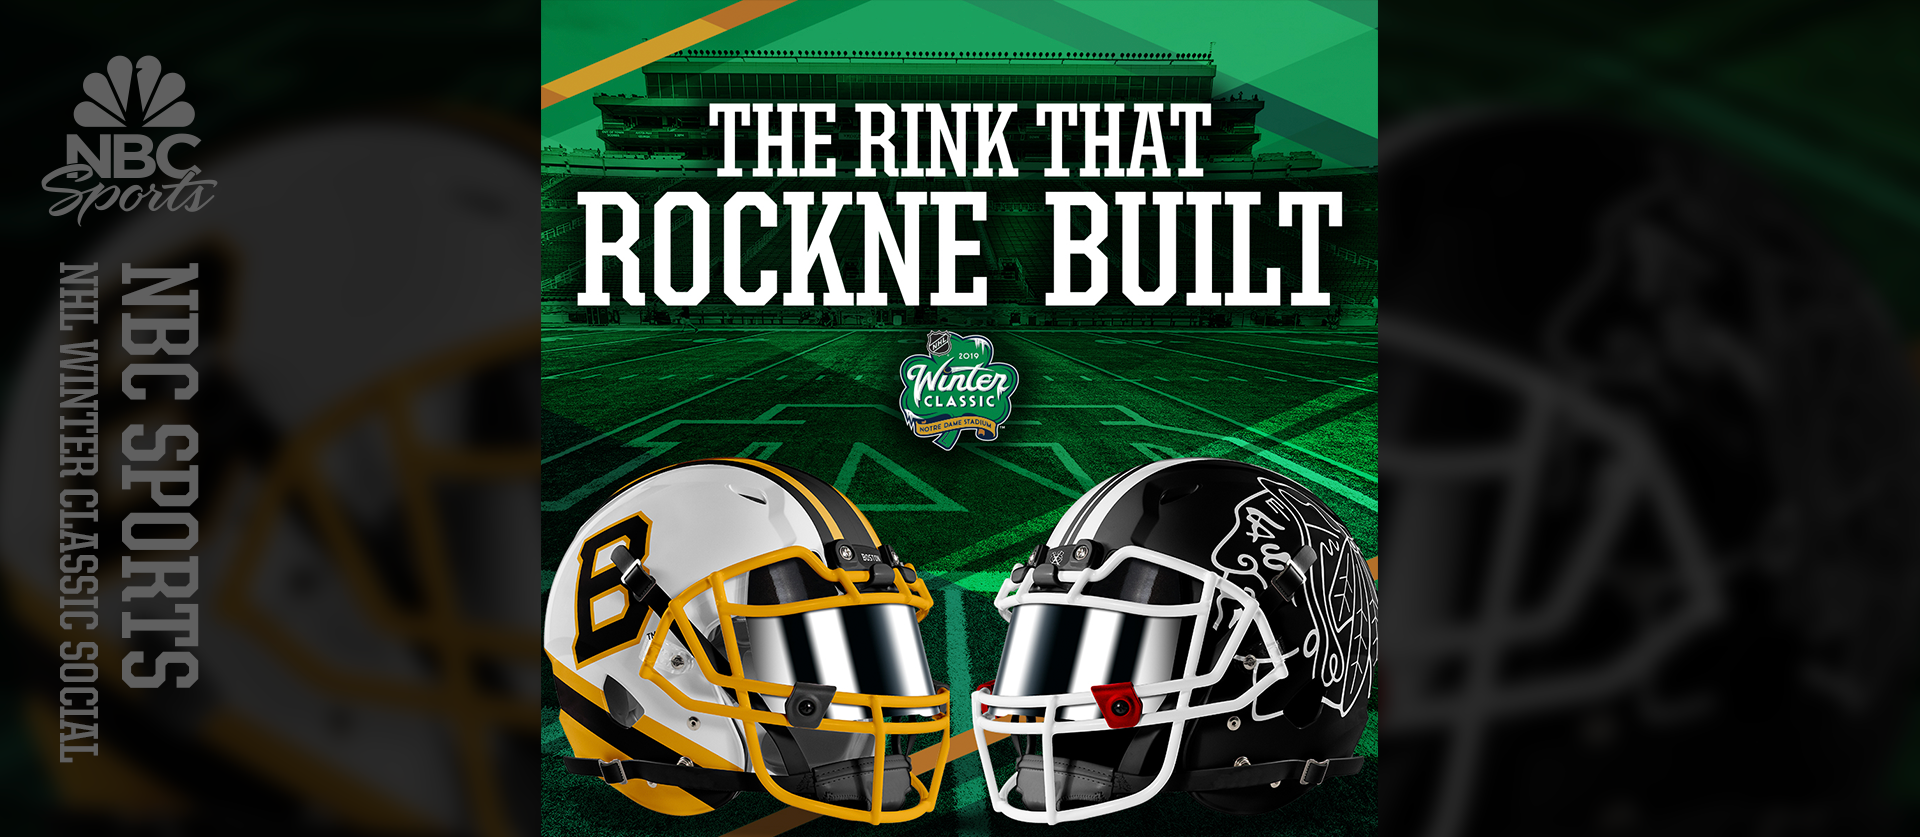 NHL Winter Classic - The Rink That Rockne Built